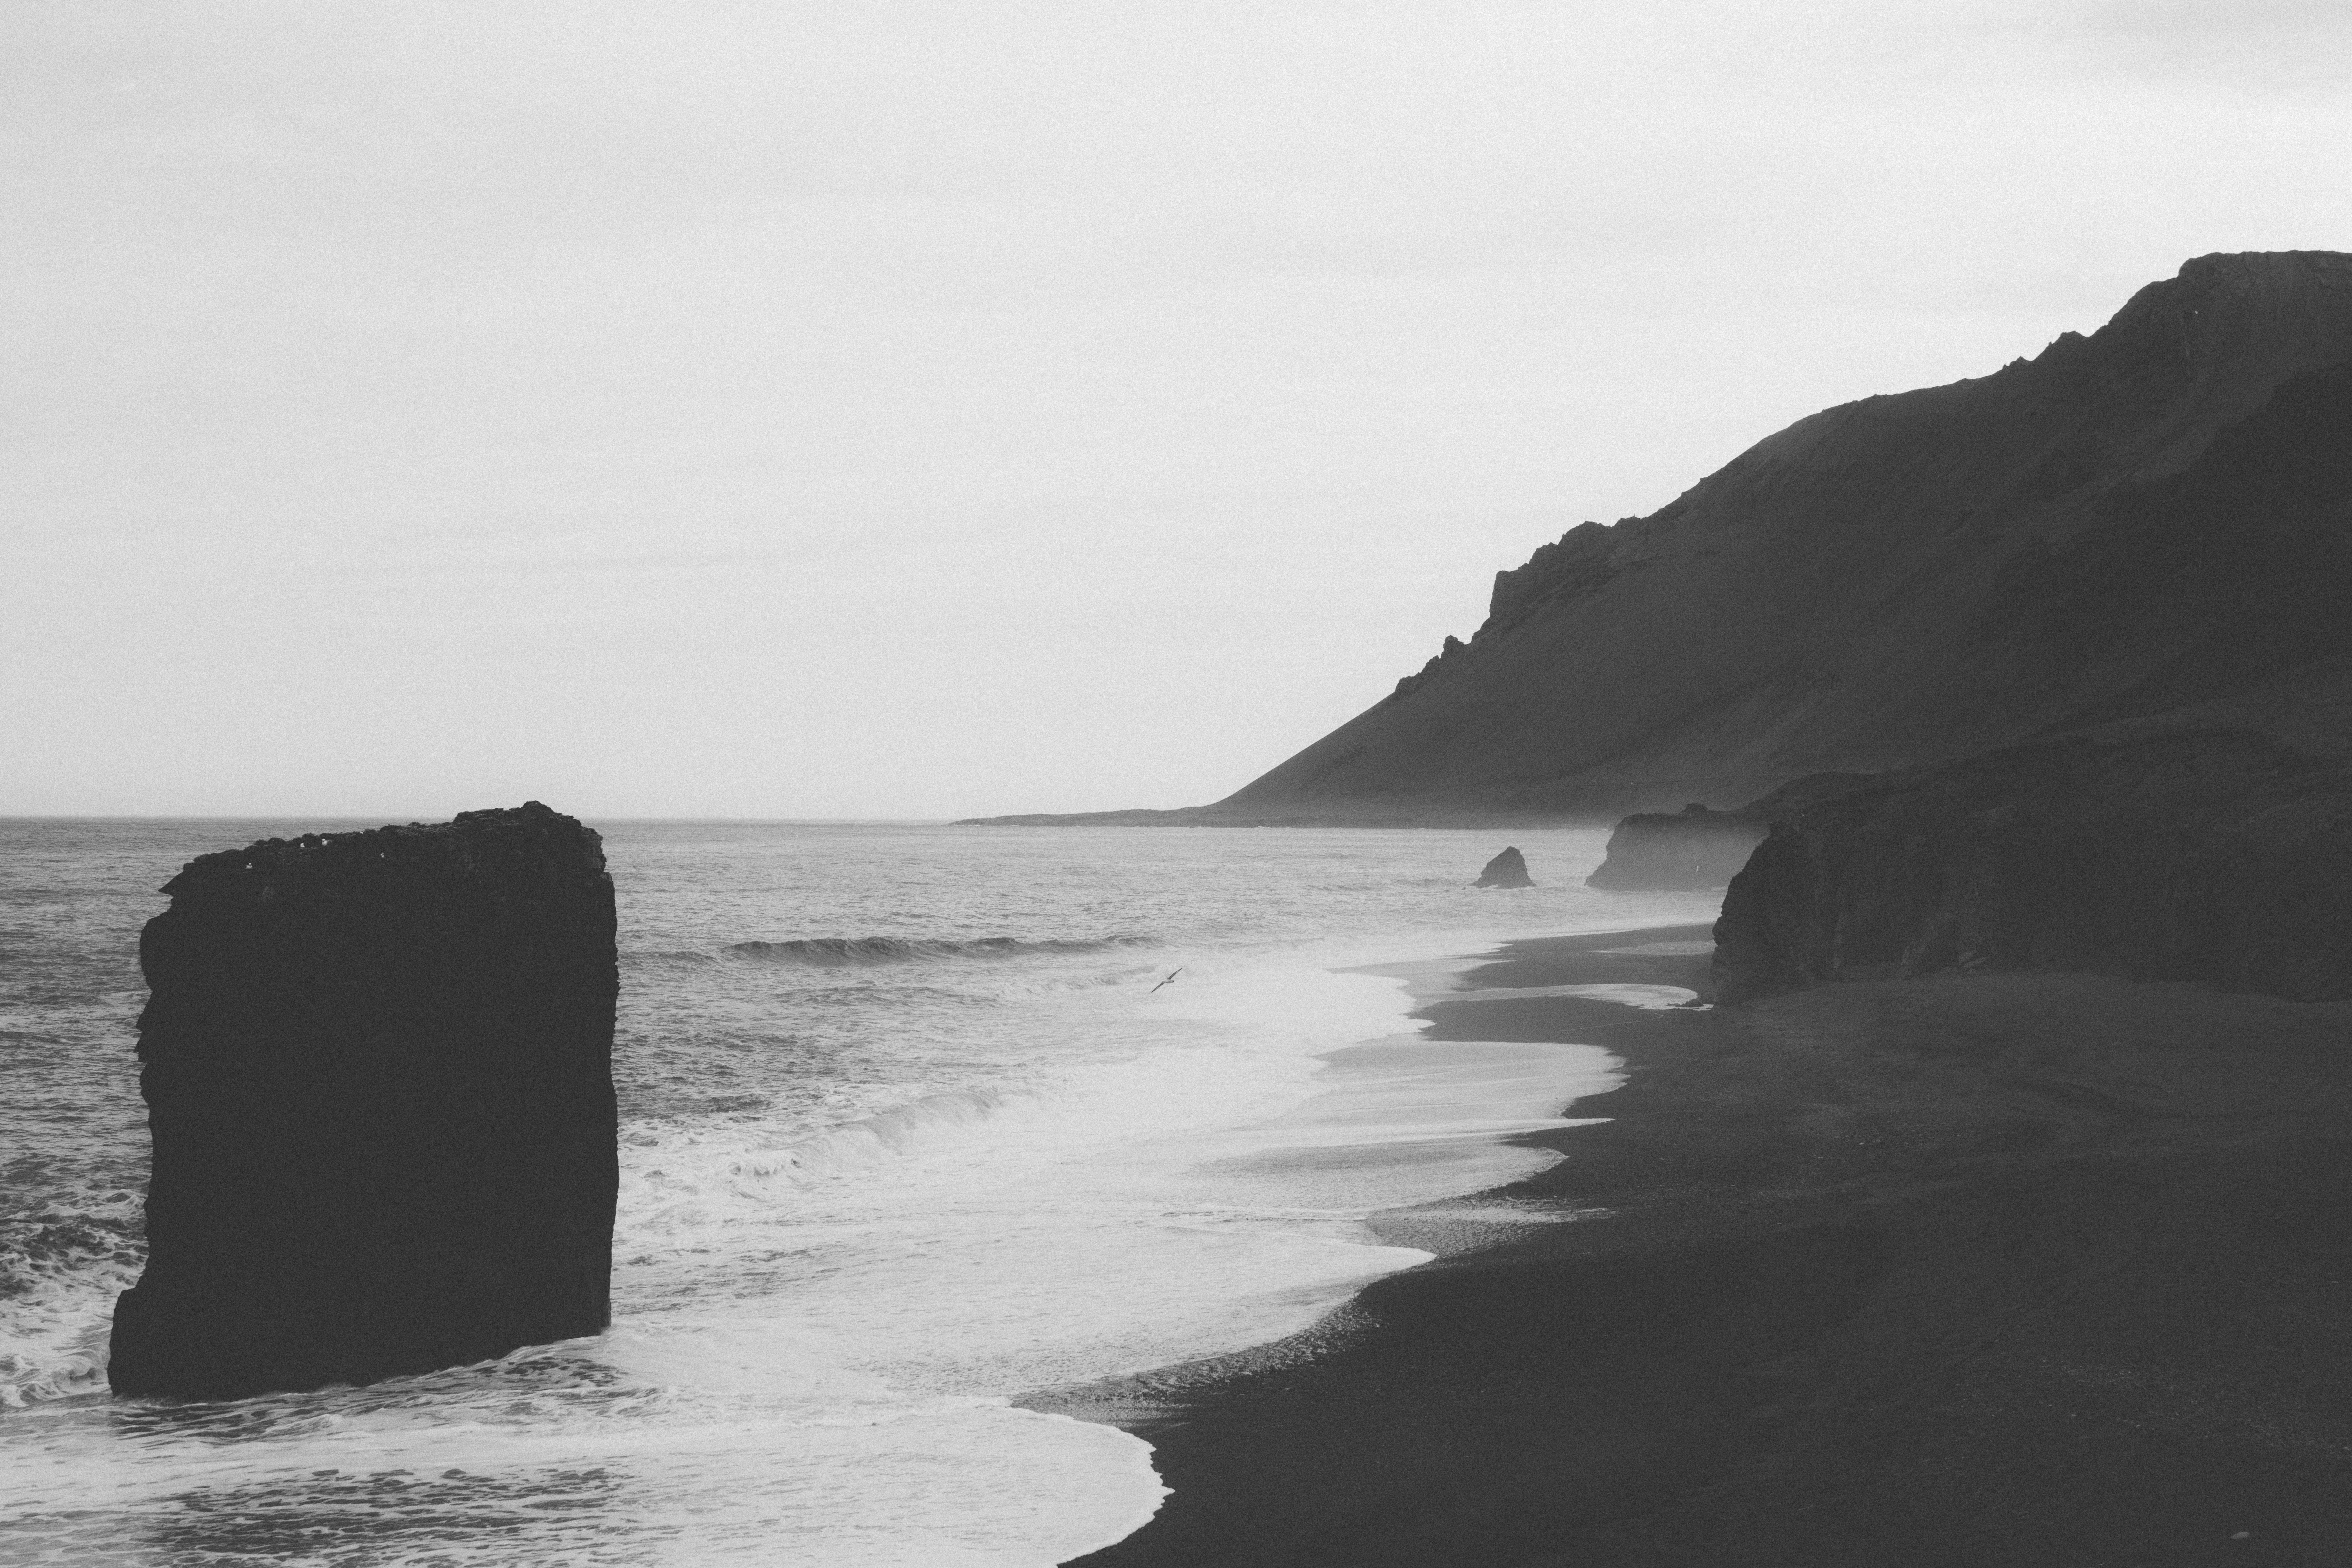 Shore, coast, beach, rocks, cliffs, black and white stones, cliff